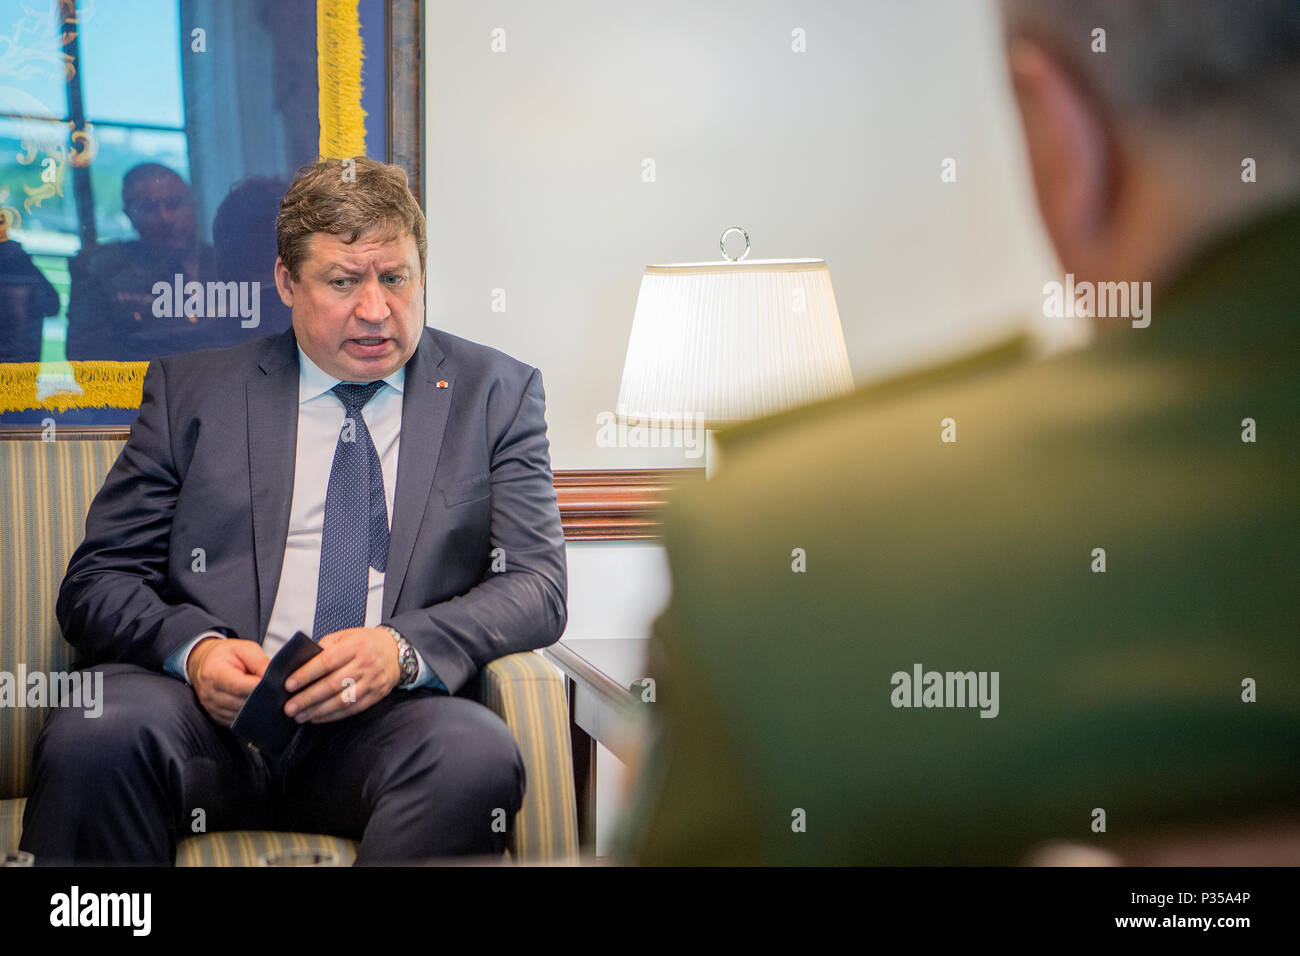 Secretary of the Army Dr. Mark T. Esper welcomes the Honorable Raimundas Karoblis, Minister of Defence of Lithuania, at the Pentagon, Washington, D.C., June 14, 2018.  (U.S. Army photo by Daniel Torok) - Stock Image